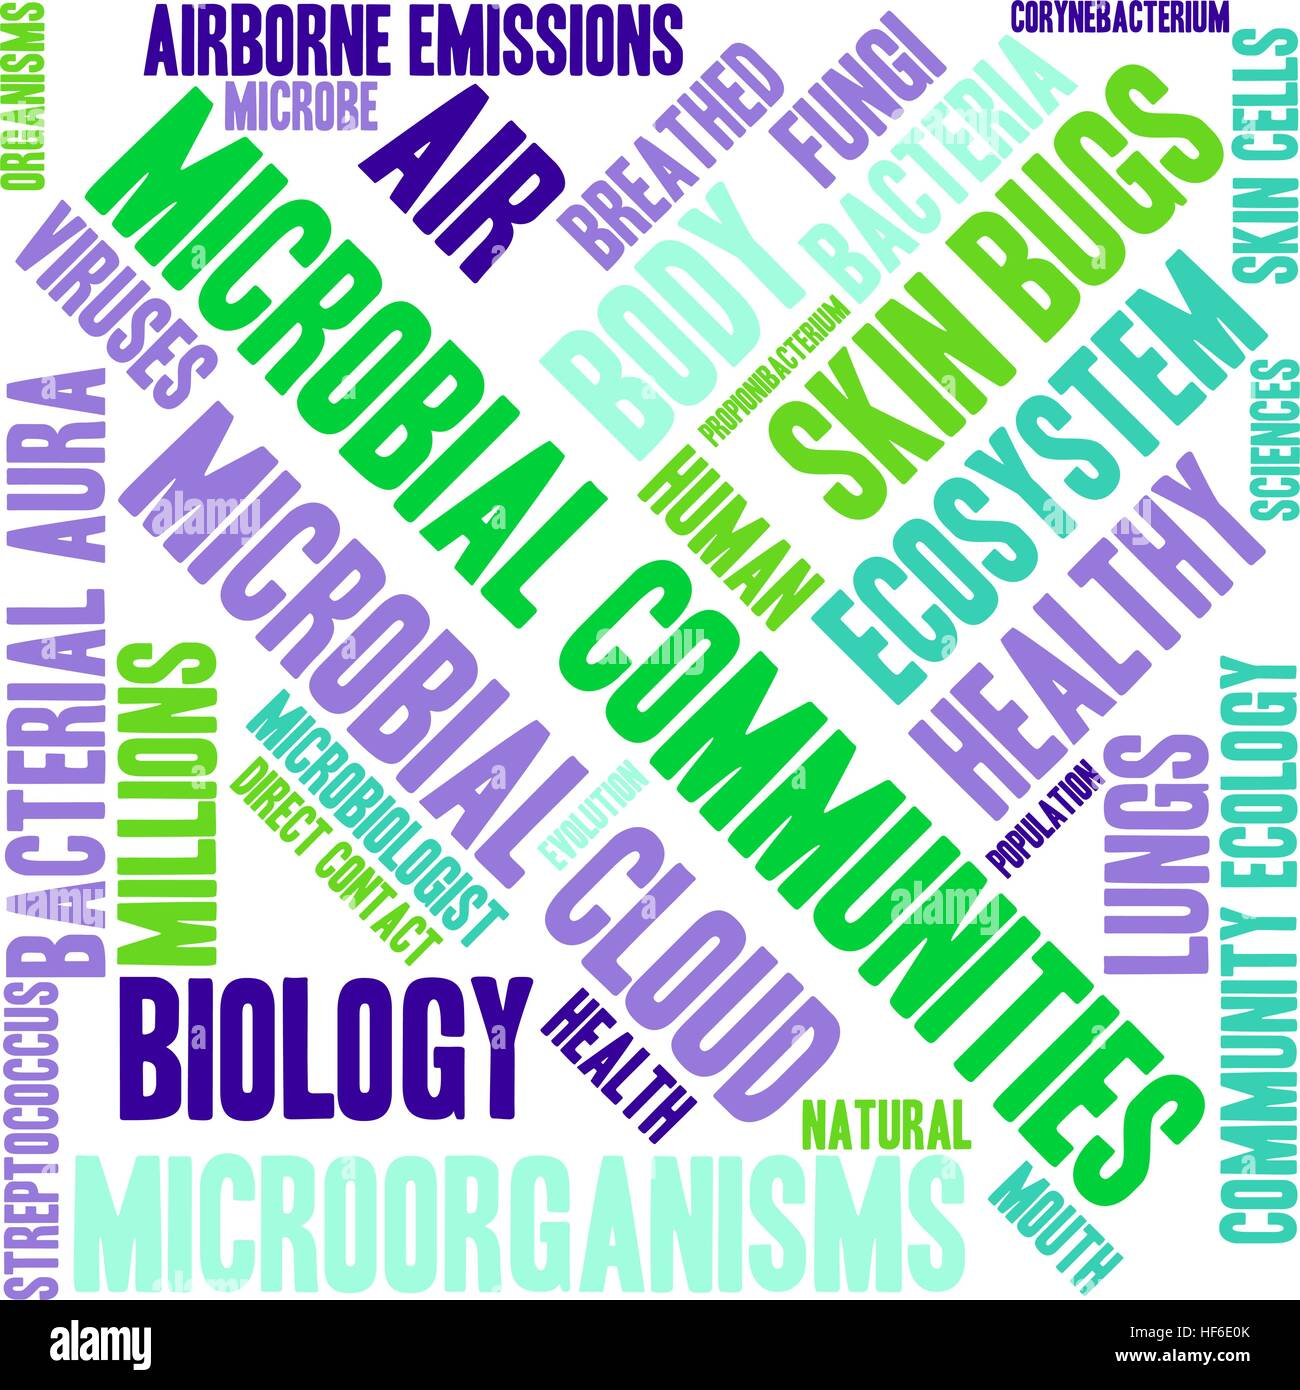 Microbial Communities word cloud on a white background. - Stock Image